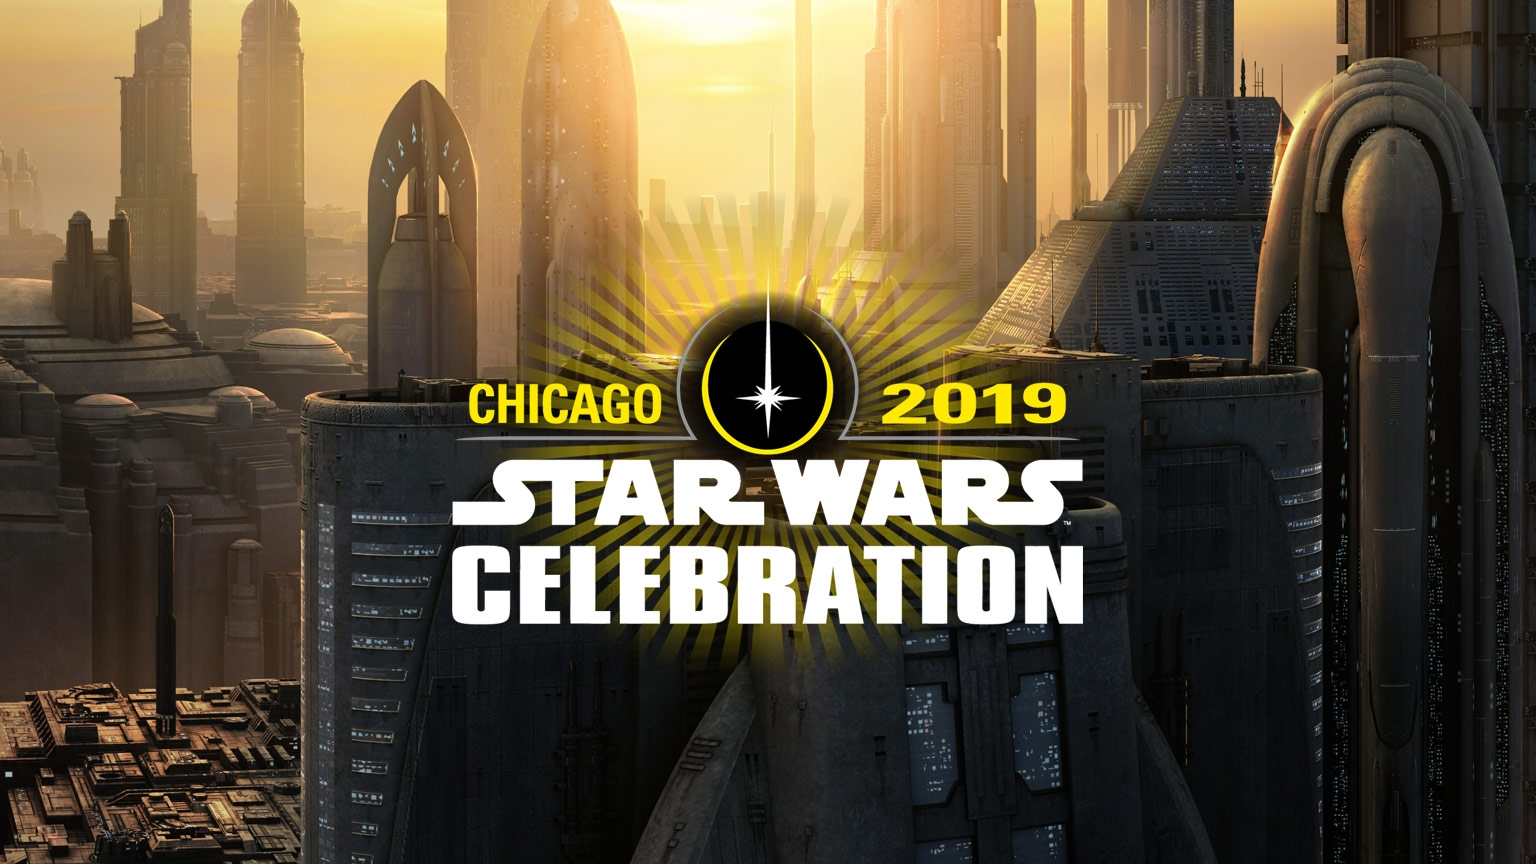 celebration-chicago-2019-city-tall.jpg